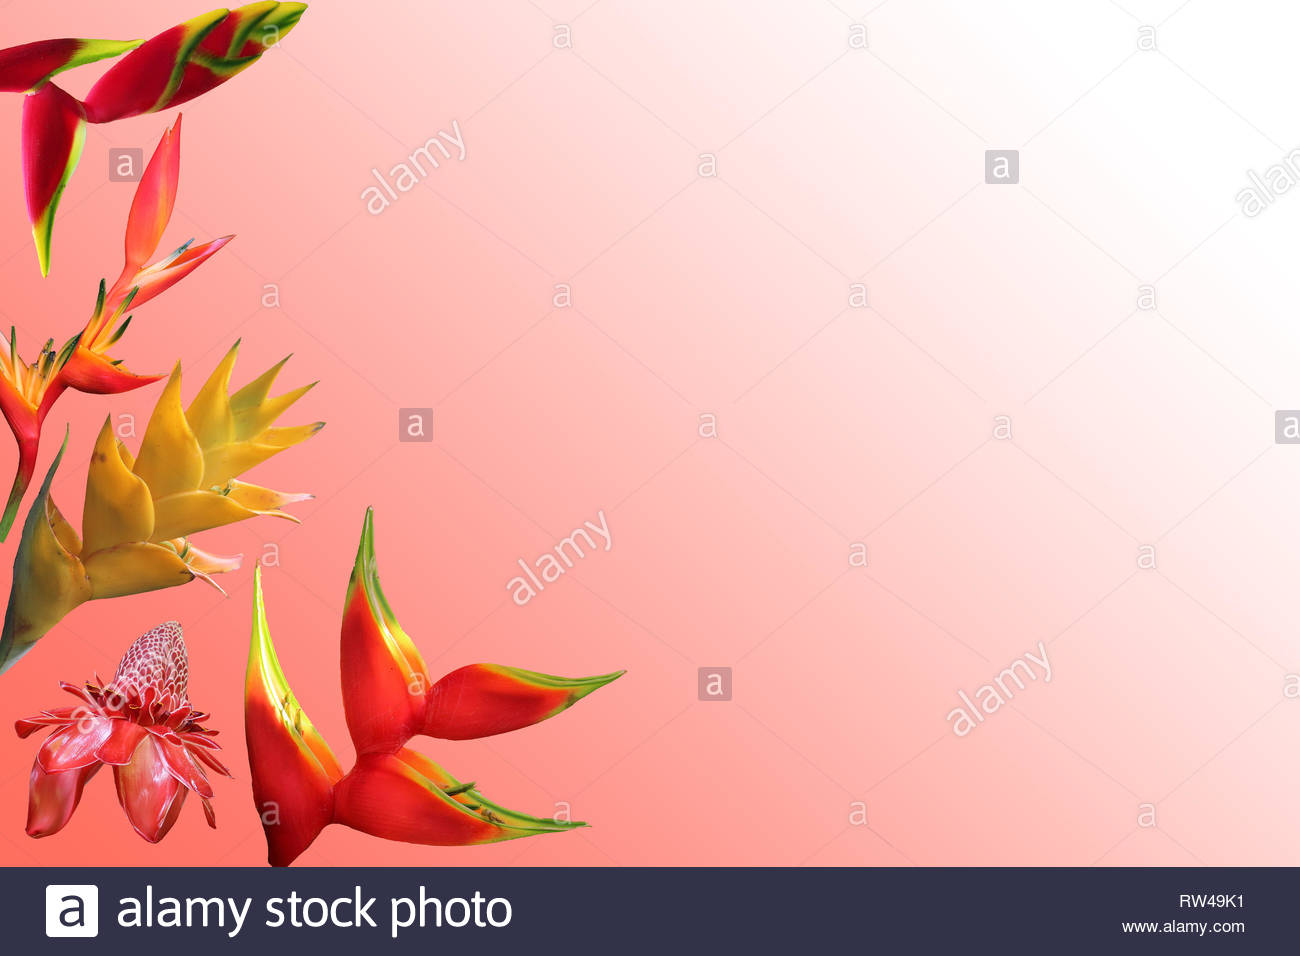 Photo composition of isolated exotic flowers on coral gradient background - Stock Image